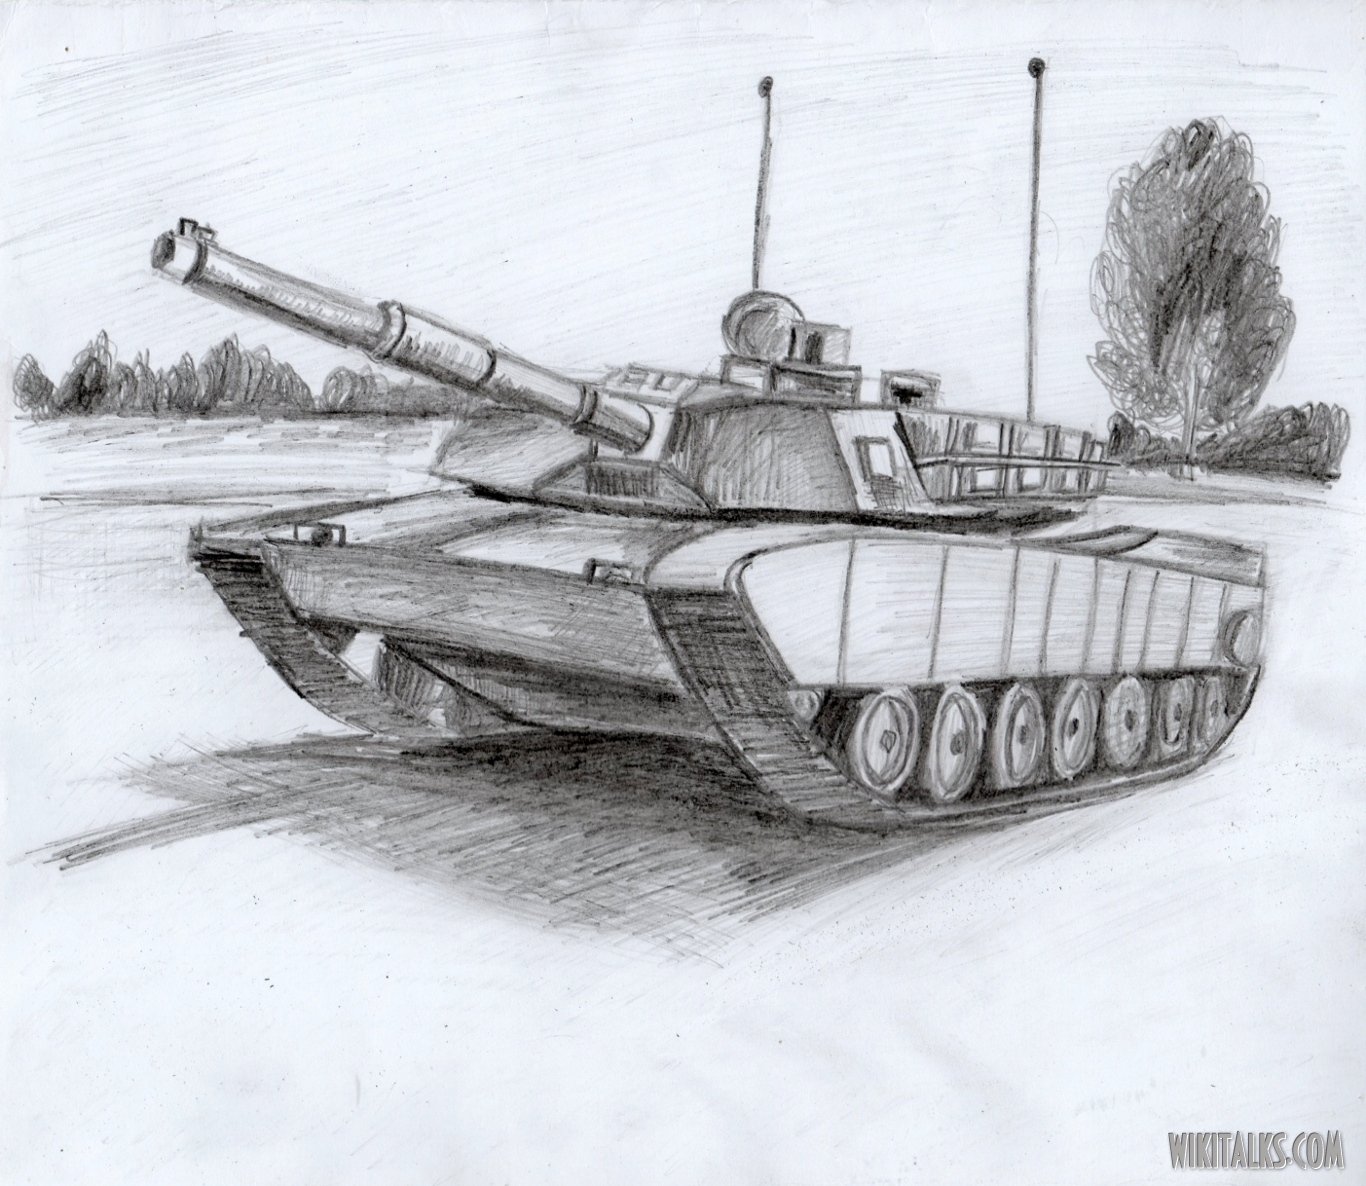 1366x1186 How To Draw A Tank In Pencil And Paint It In Colors Wiki Talks